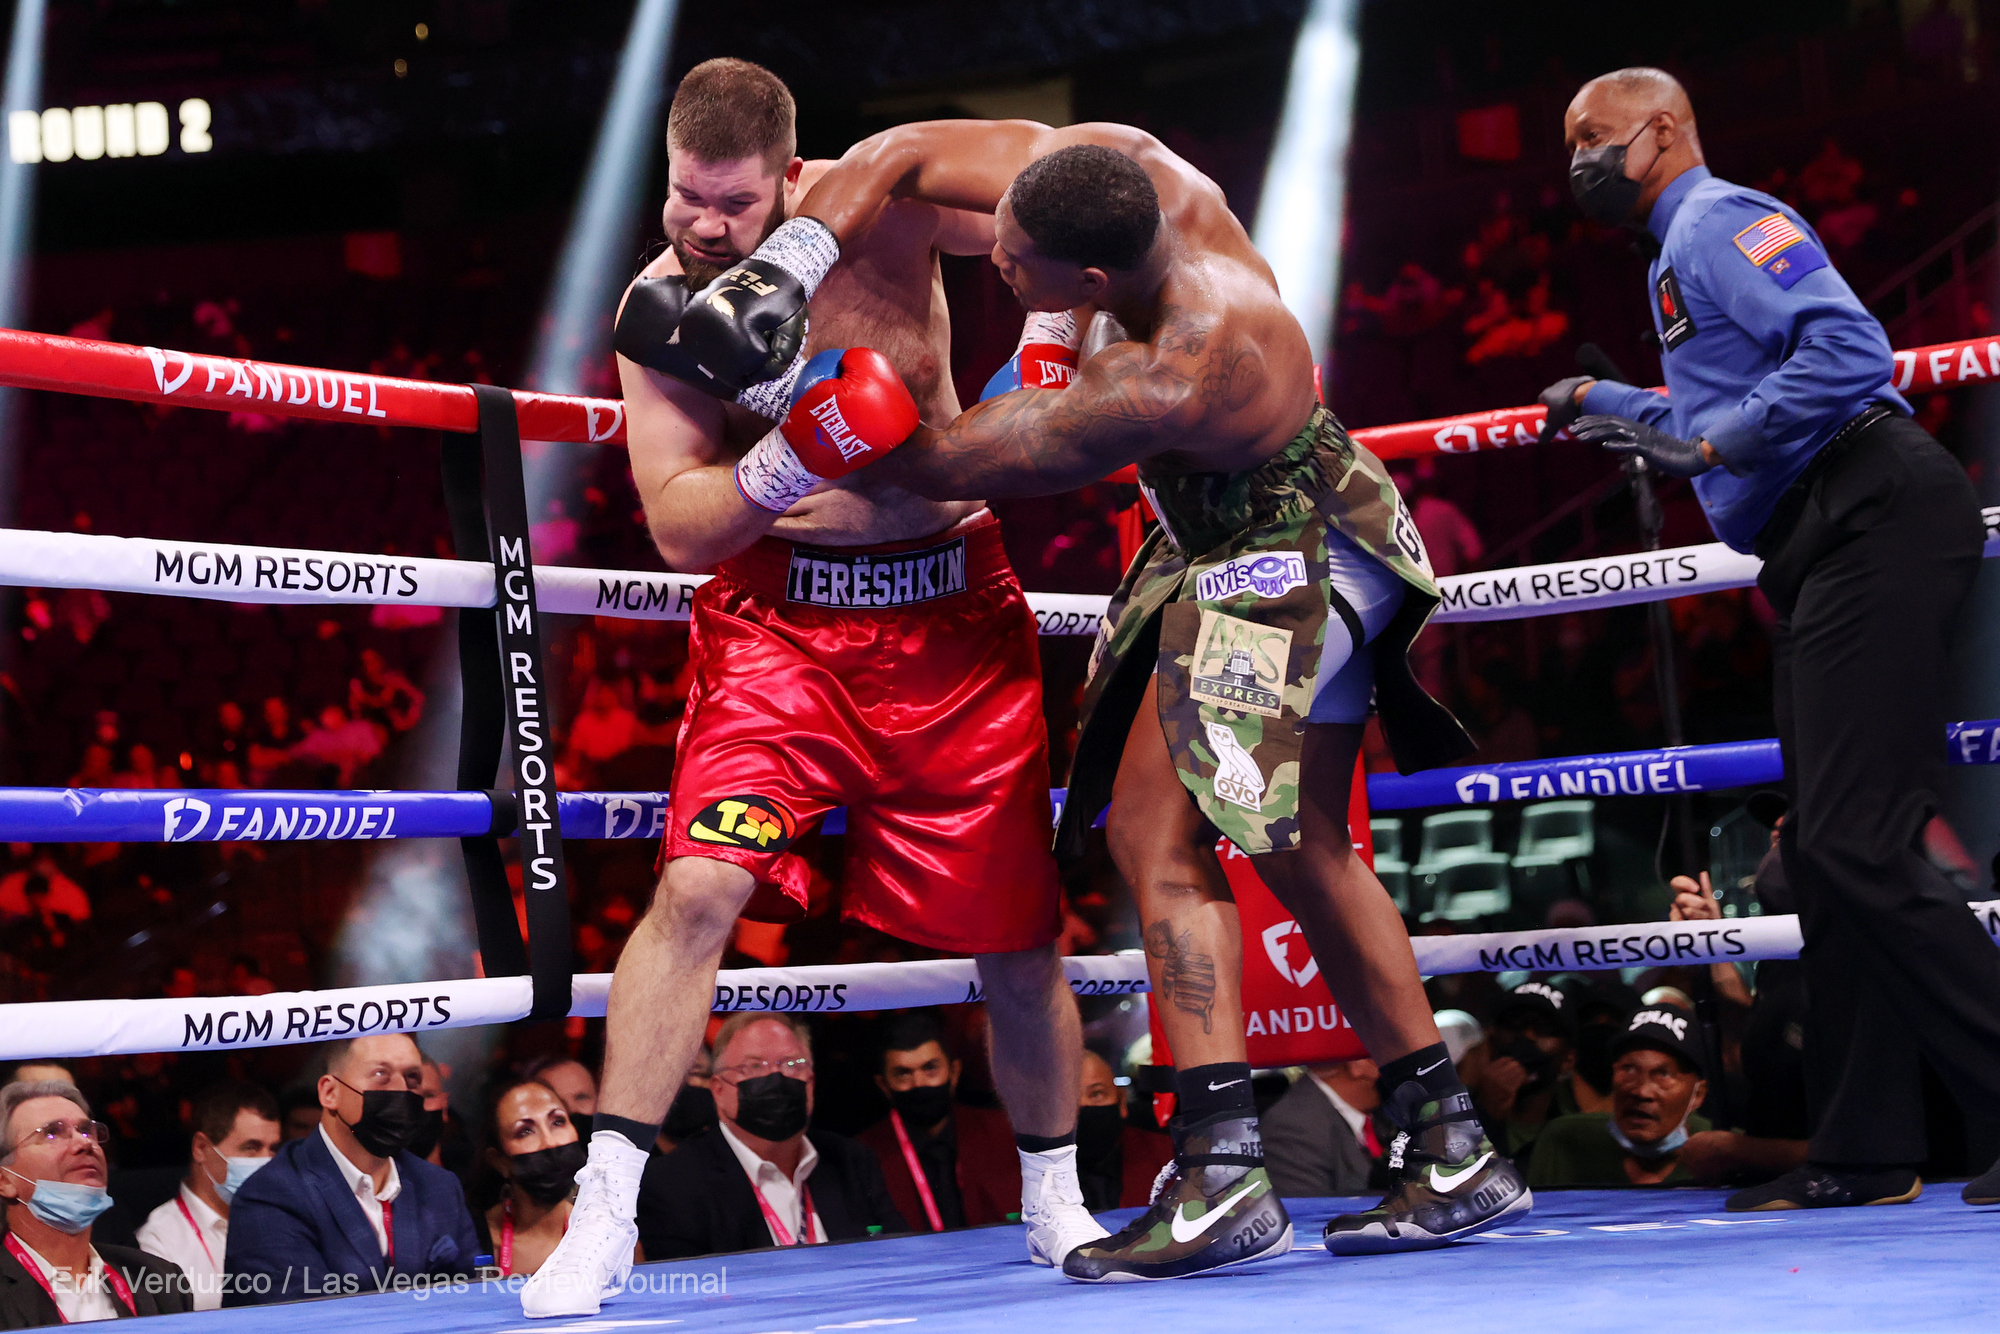 Jared Anderson Batters And Stops Wladimir Tereshkin In Two Rounds Photo 2